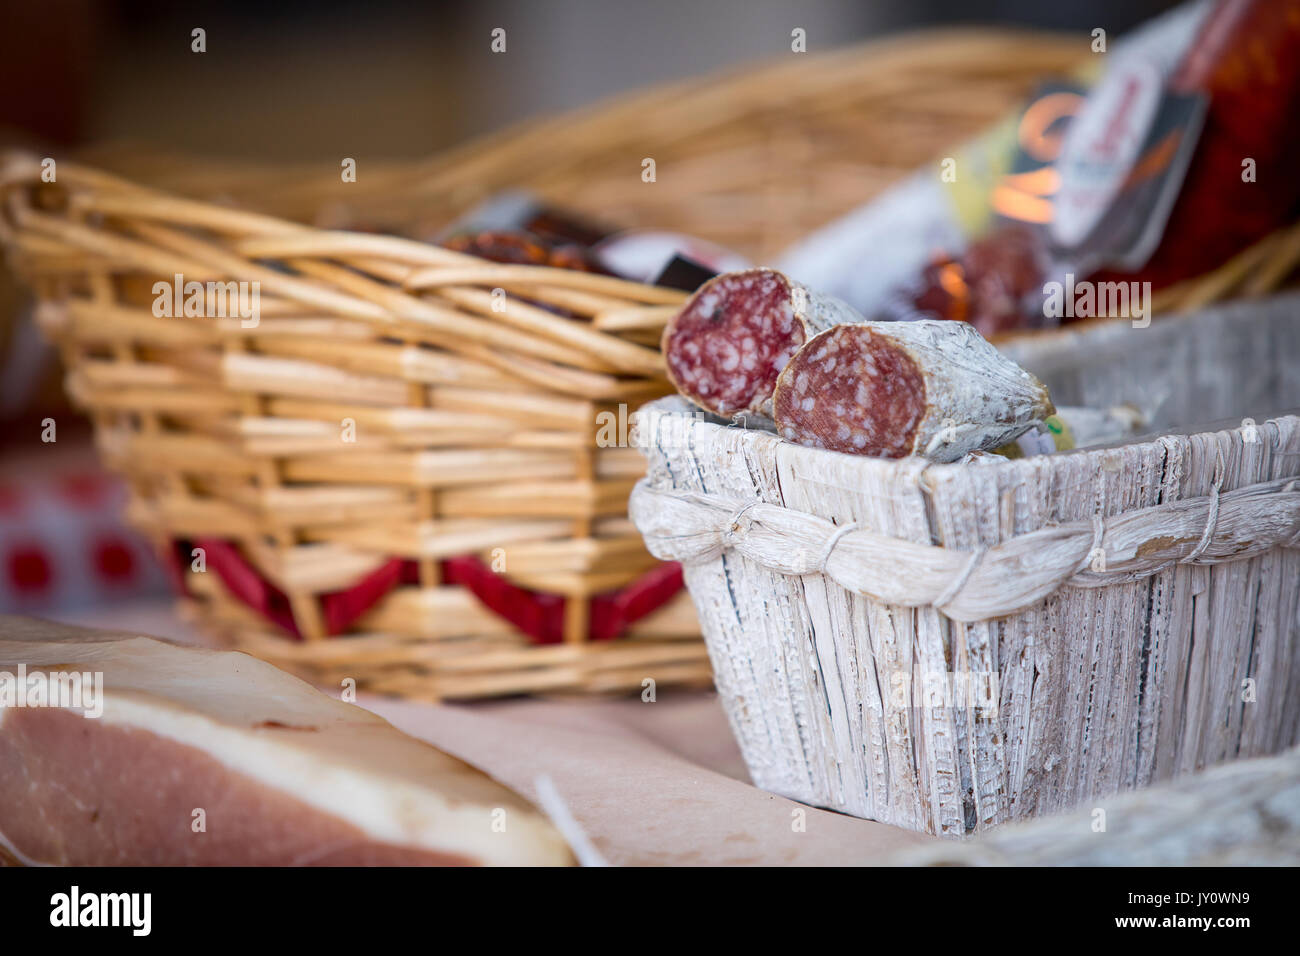 Traditional home-made salami in the basket on the market for sale. - Stock Image